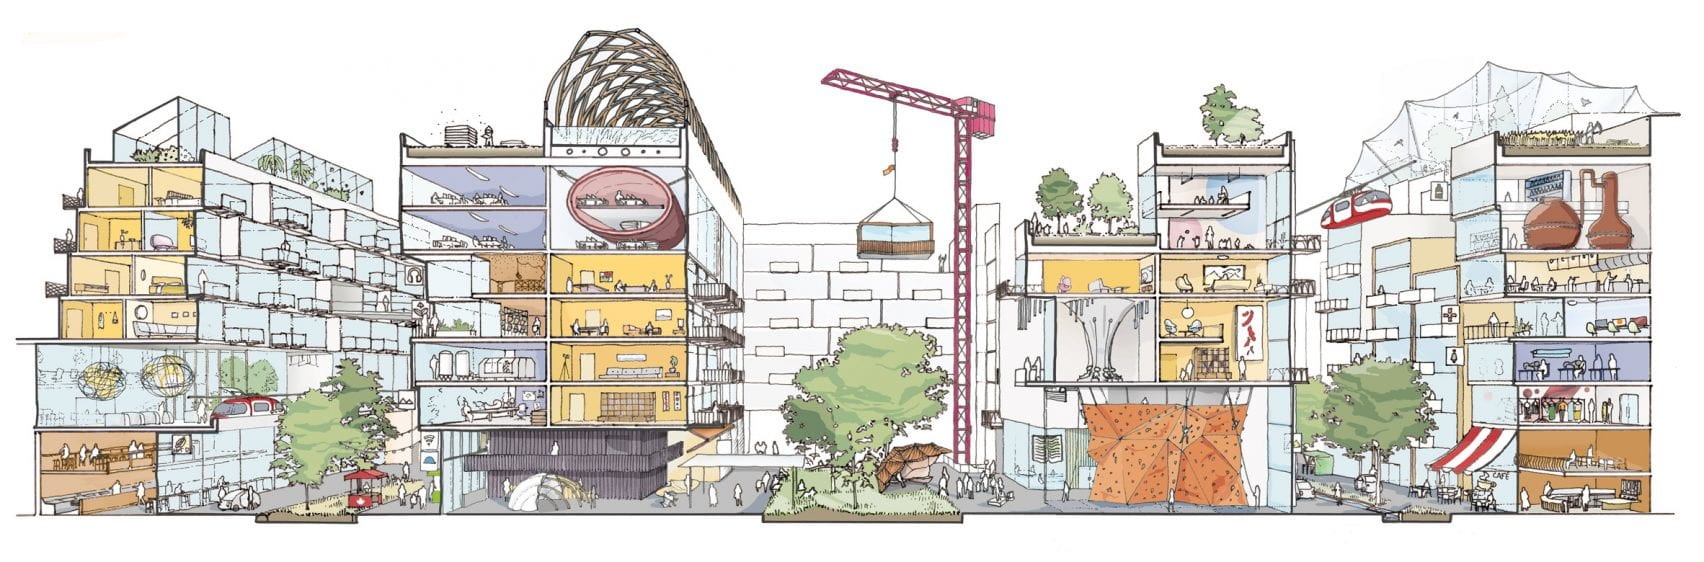 illustration de quayside